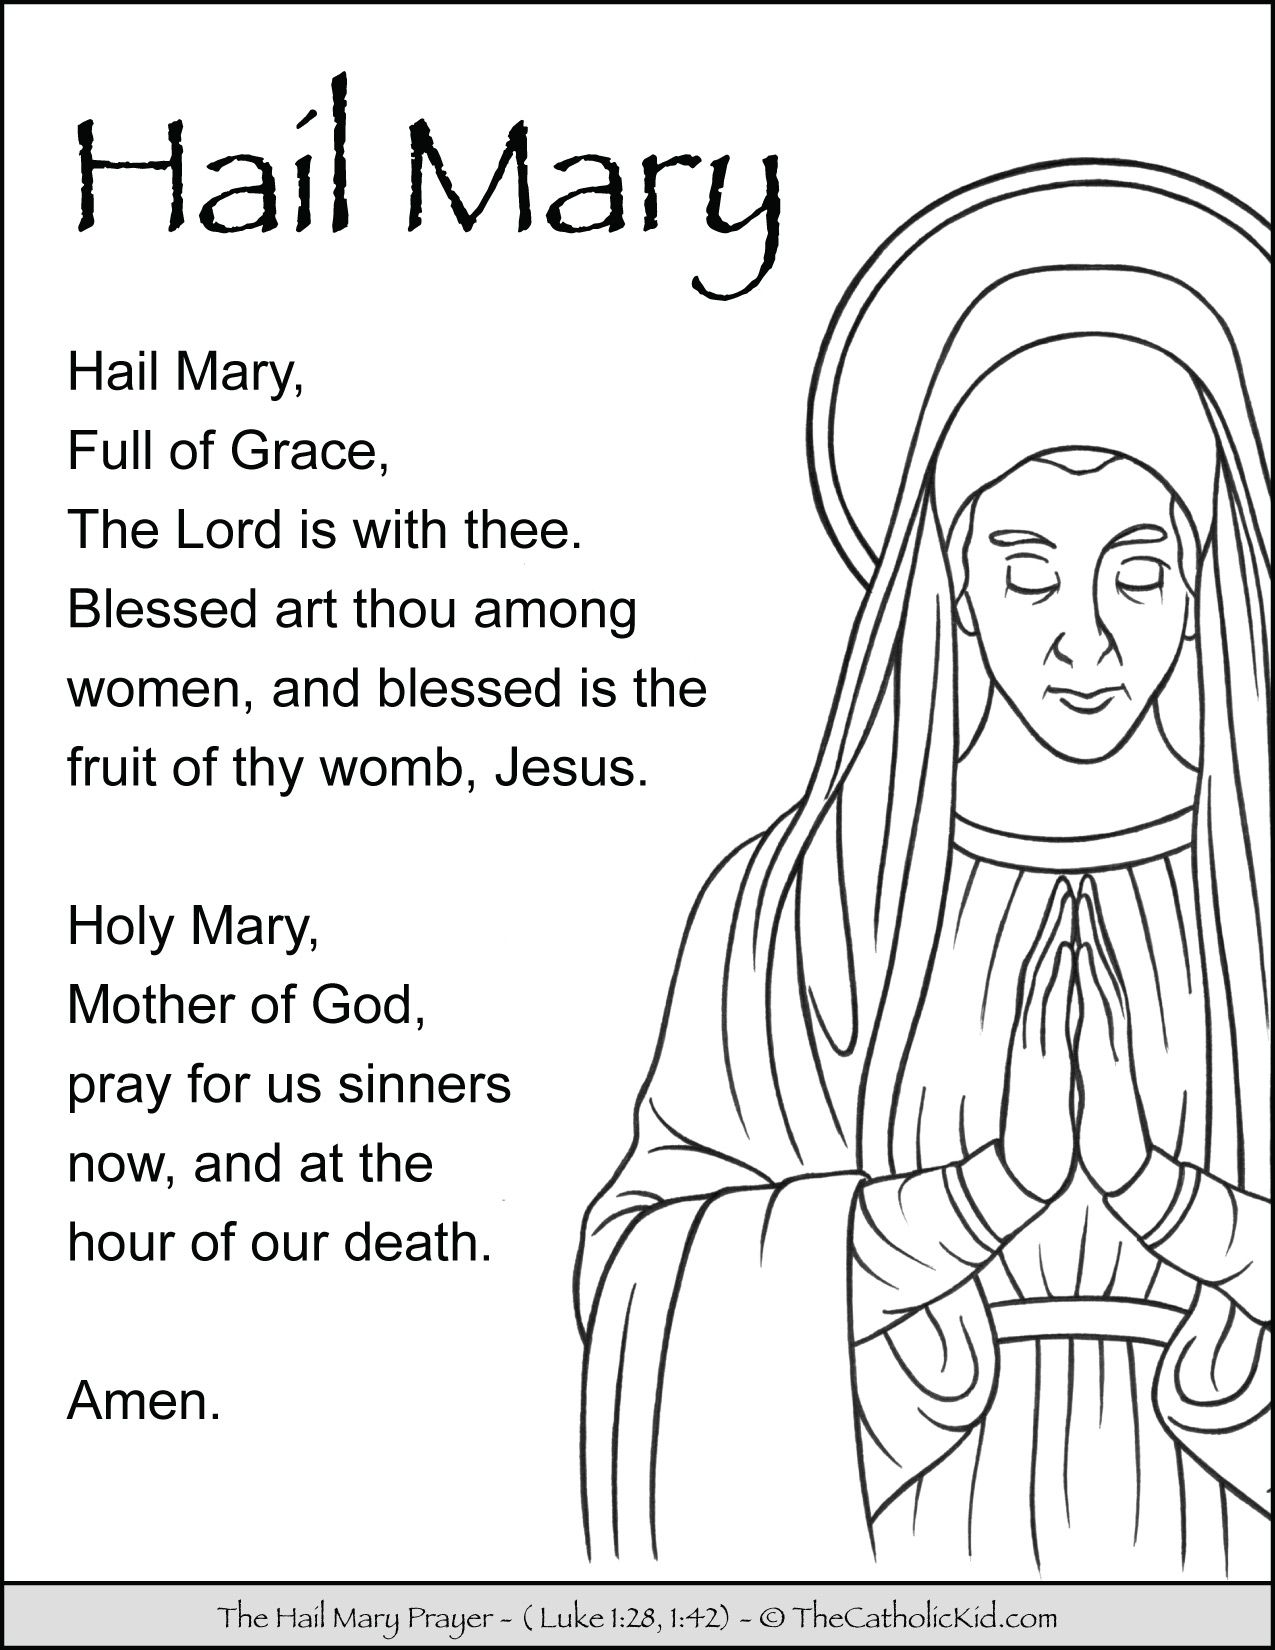 Hail Mary Prayer Coloring Page Thecatholickid Com Prayers To Mary Hail Mary Prayer Prayers